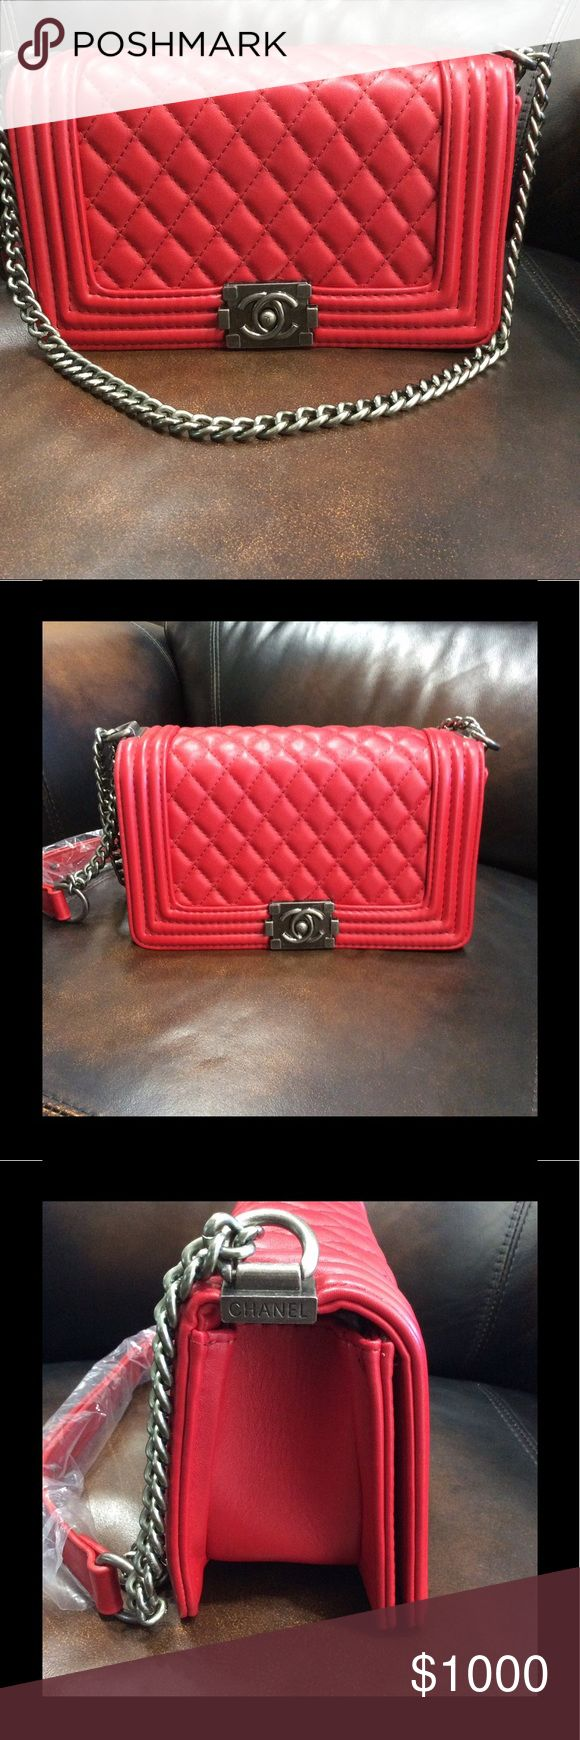 Red shoulder bag Brand new with tags. Red shoulder bag wig adjustable strap. Not Authentic.. red interior. Does not come with any accessories. Make an offer! CHANEL Bags Shoulder Bags